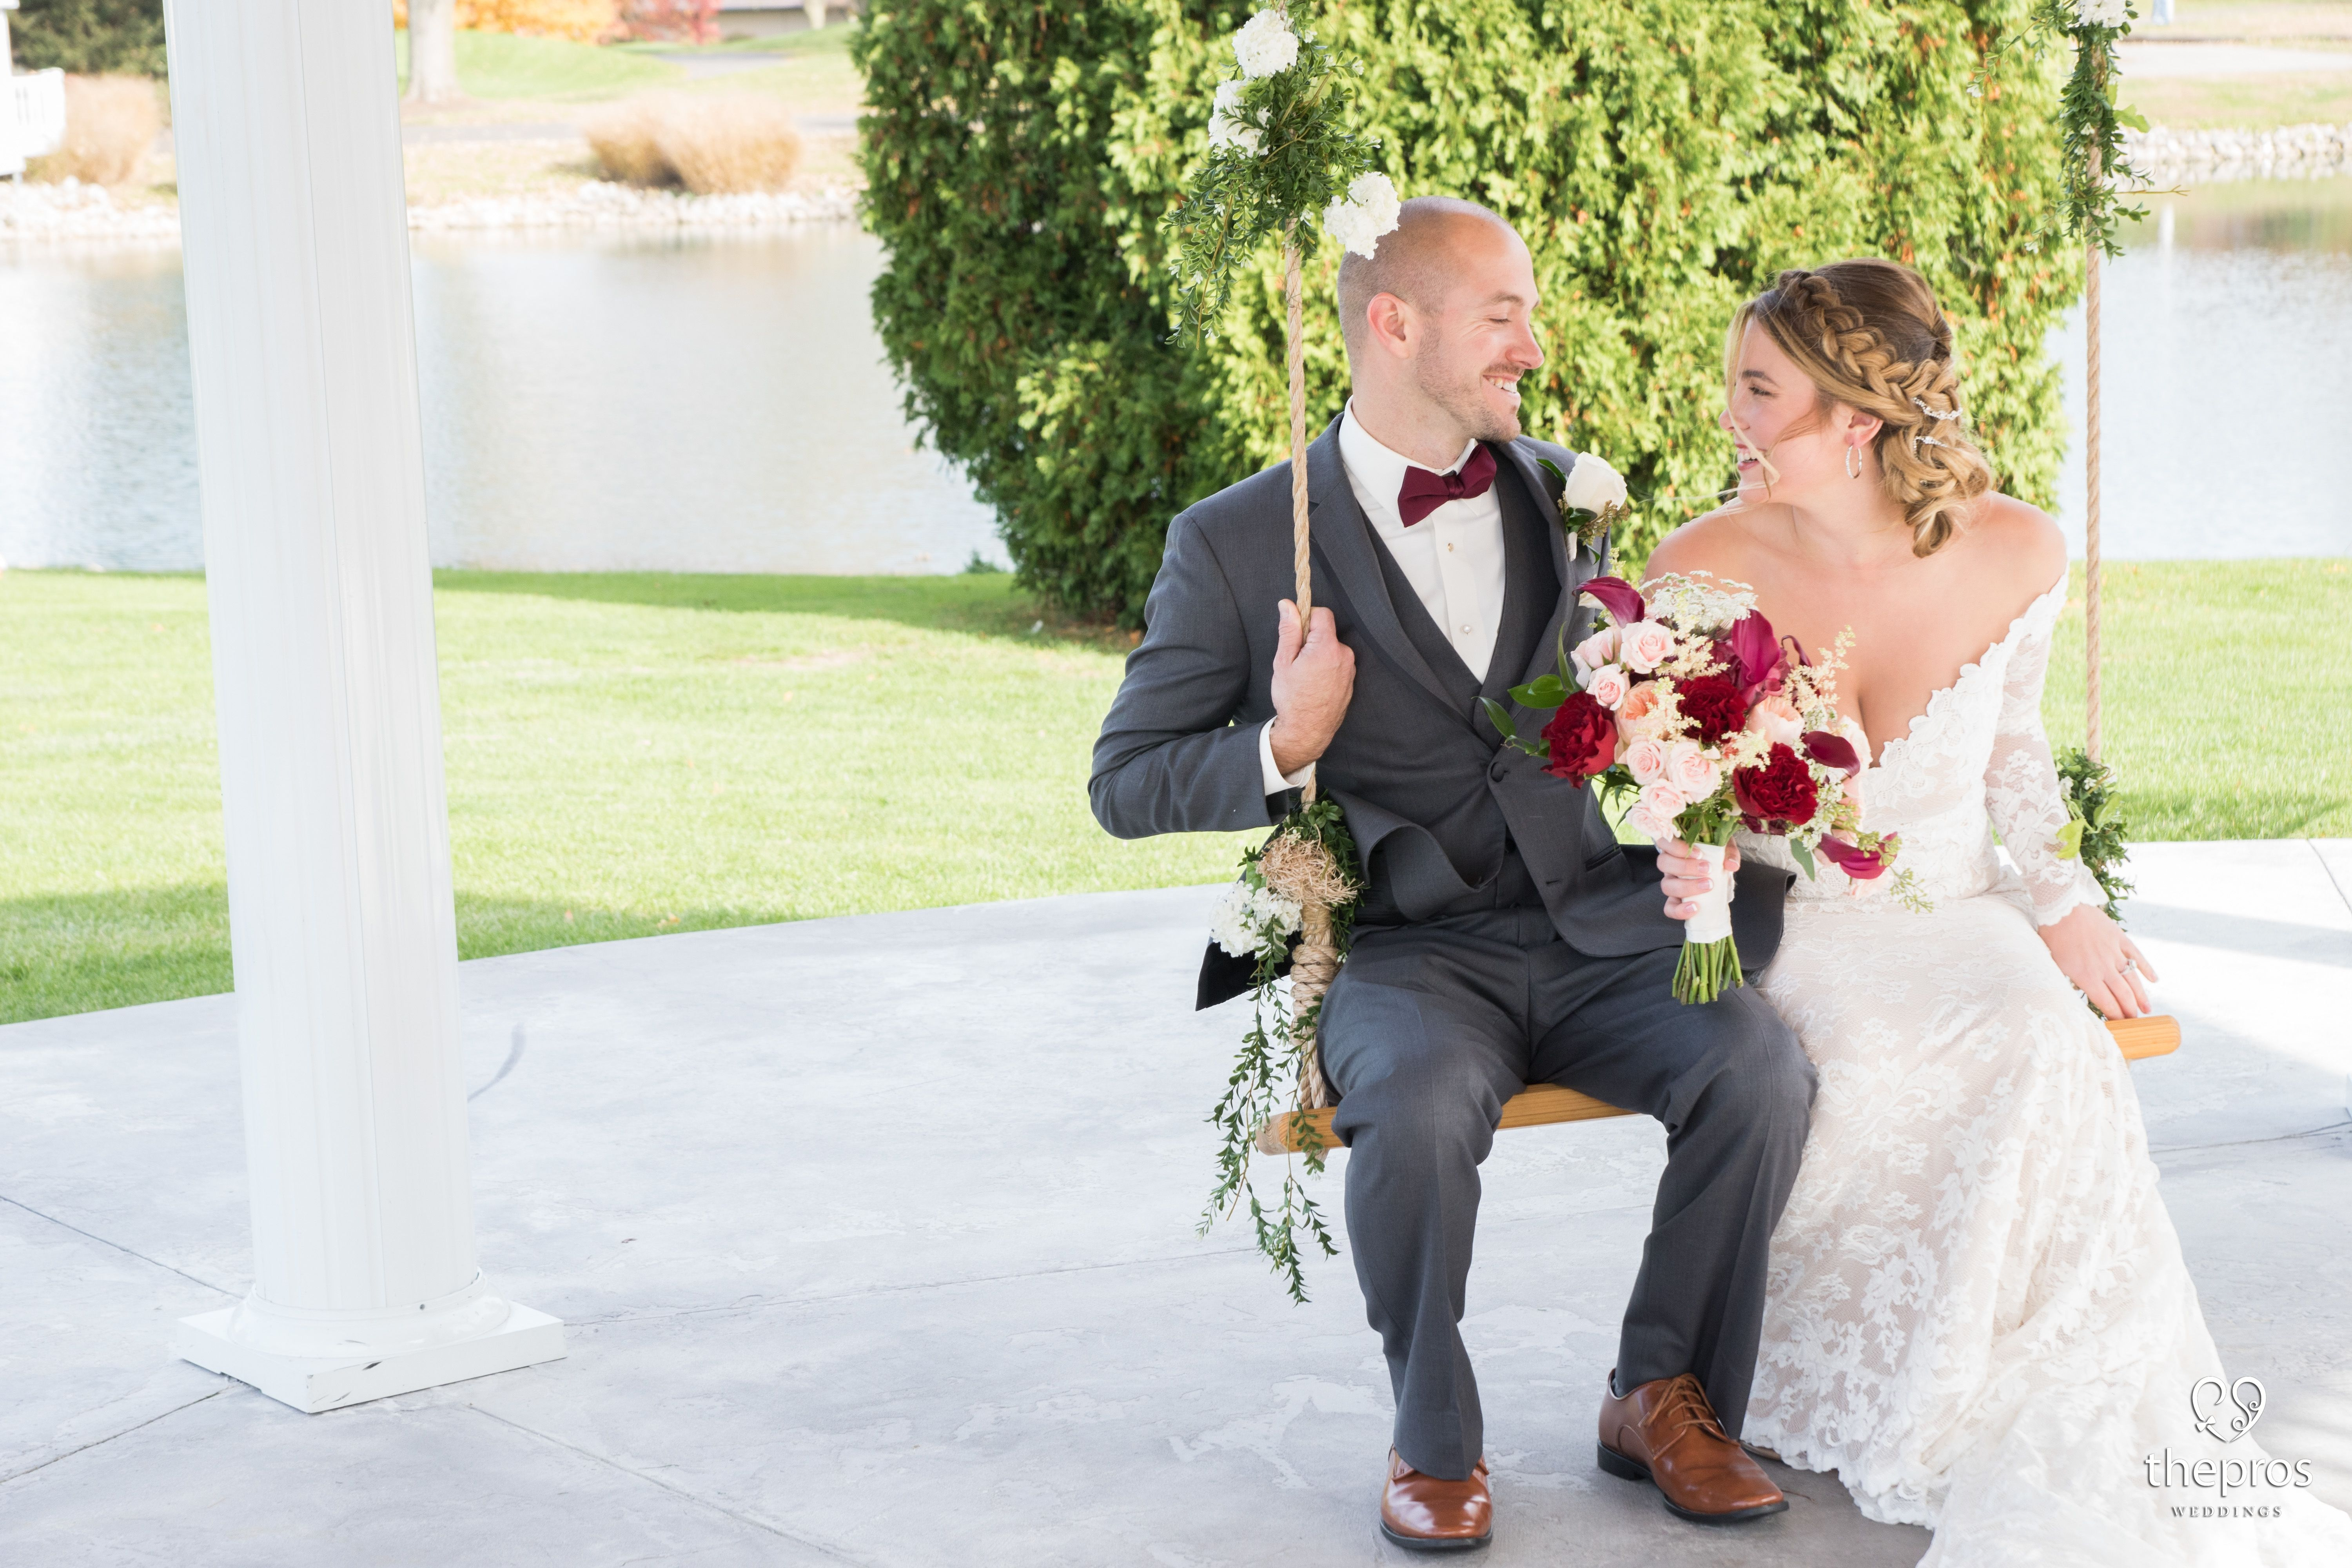 Vanetta Jeff Say I Do In Greenwood In Blog The Pros Wedding Dresses Lace Wedding Dresses Lace Wedding